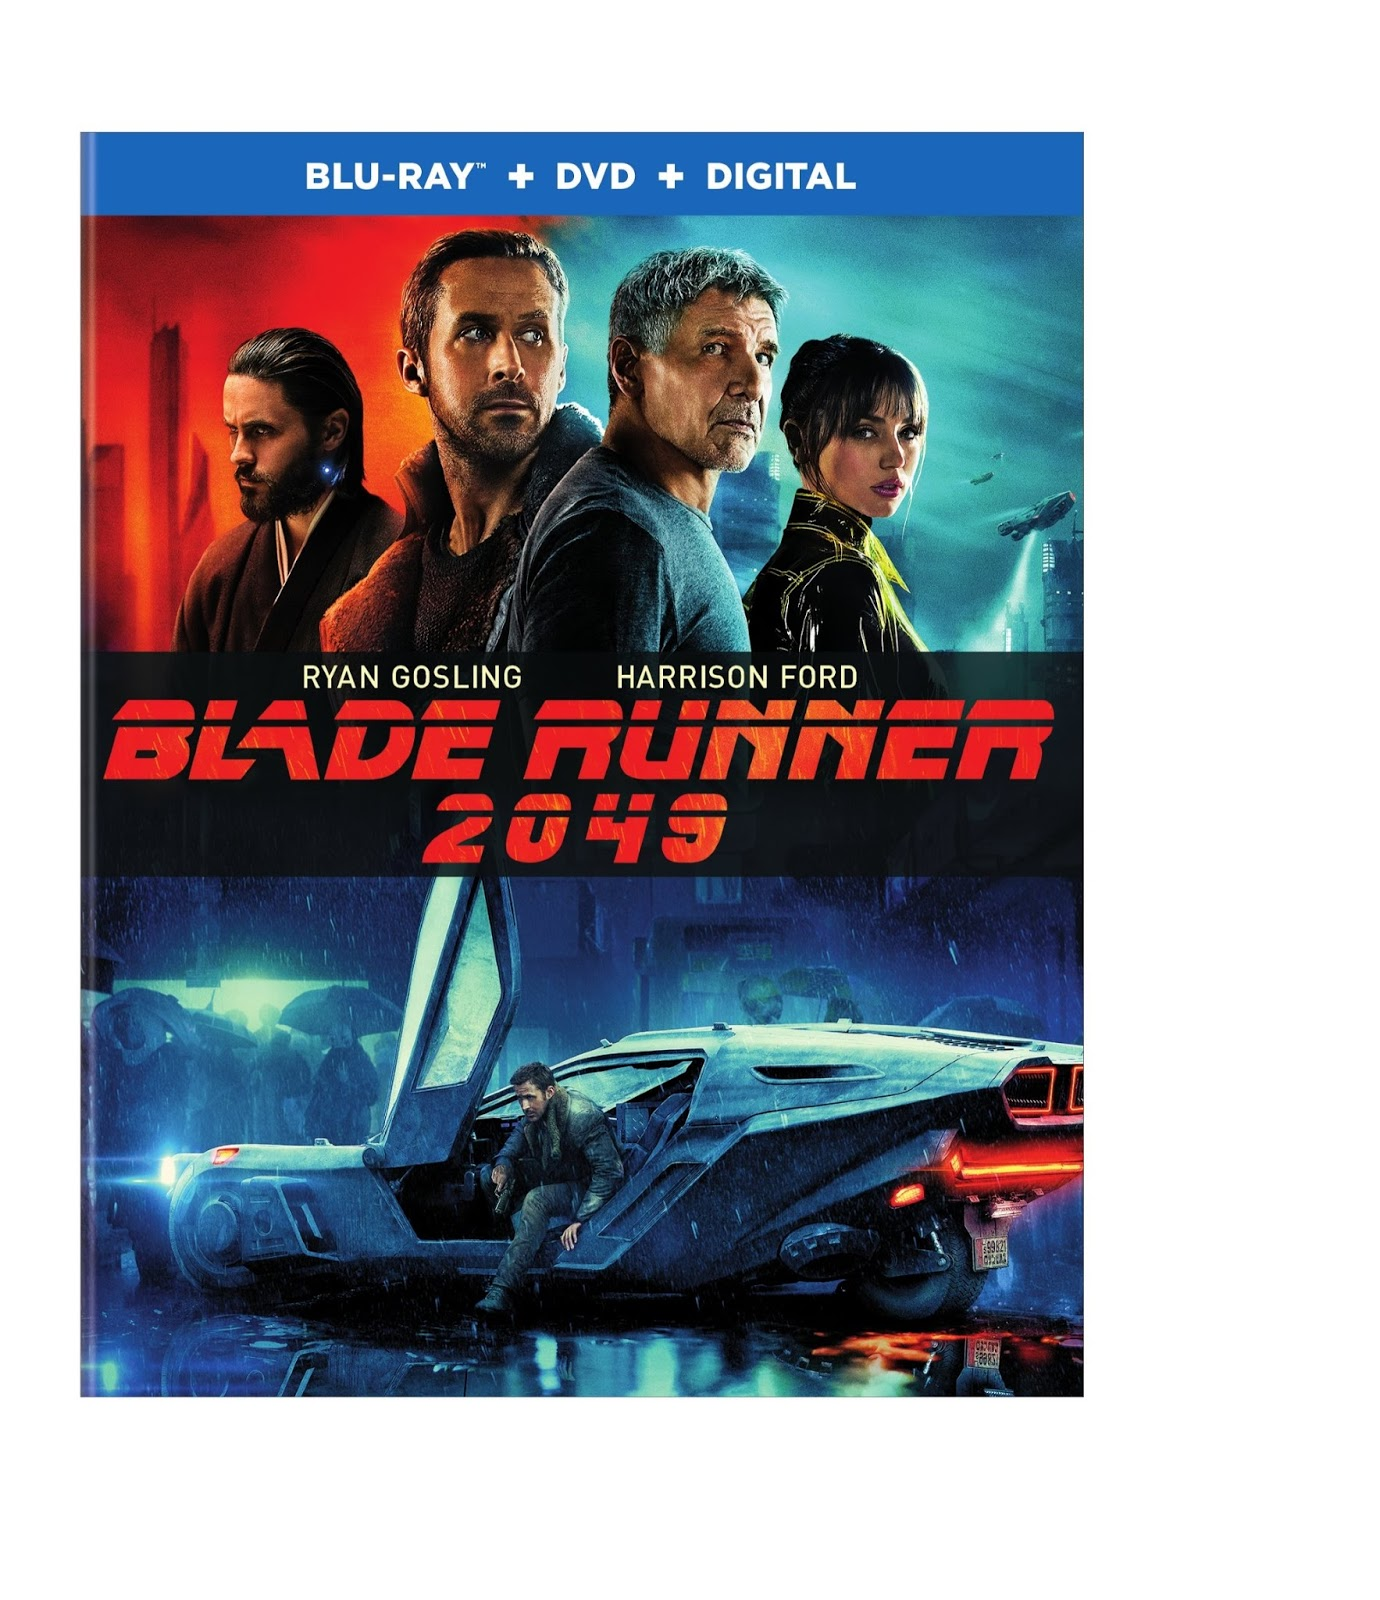 blu ray journal blade runner 2049 4k ultra hd blu ray january 16th. Black Bedroom Furniture Sets. Home Design Ideas